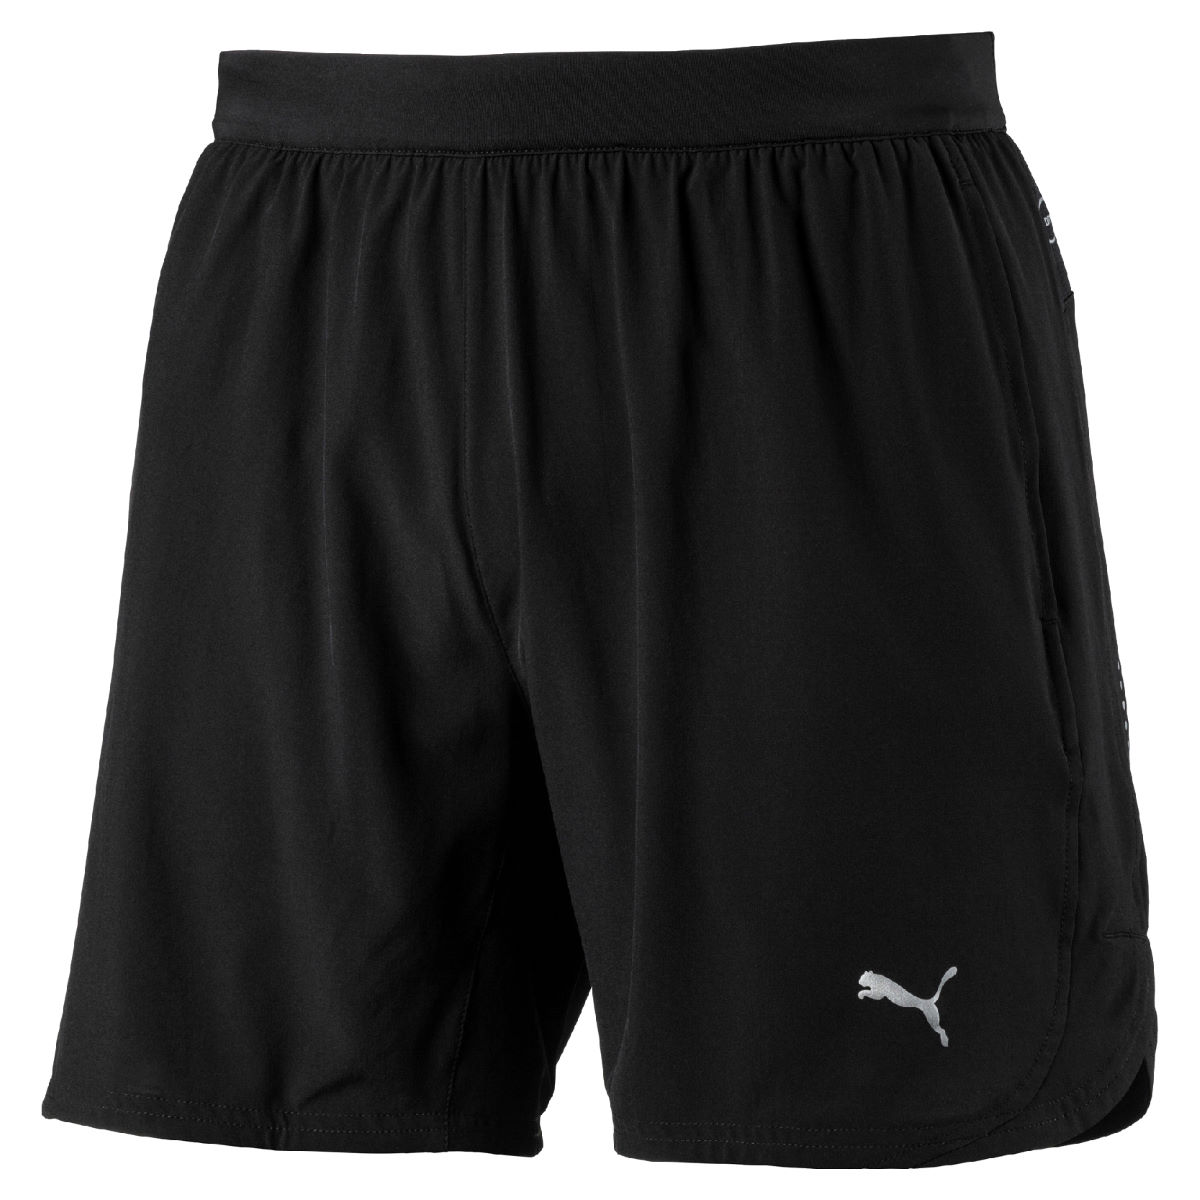 """Puma Pace 7"""" Run Short - L Puma Black 